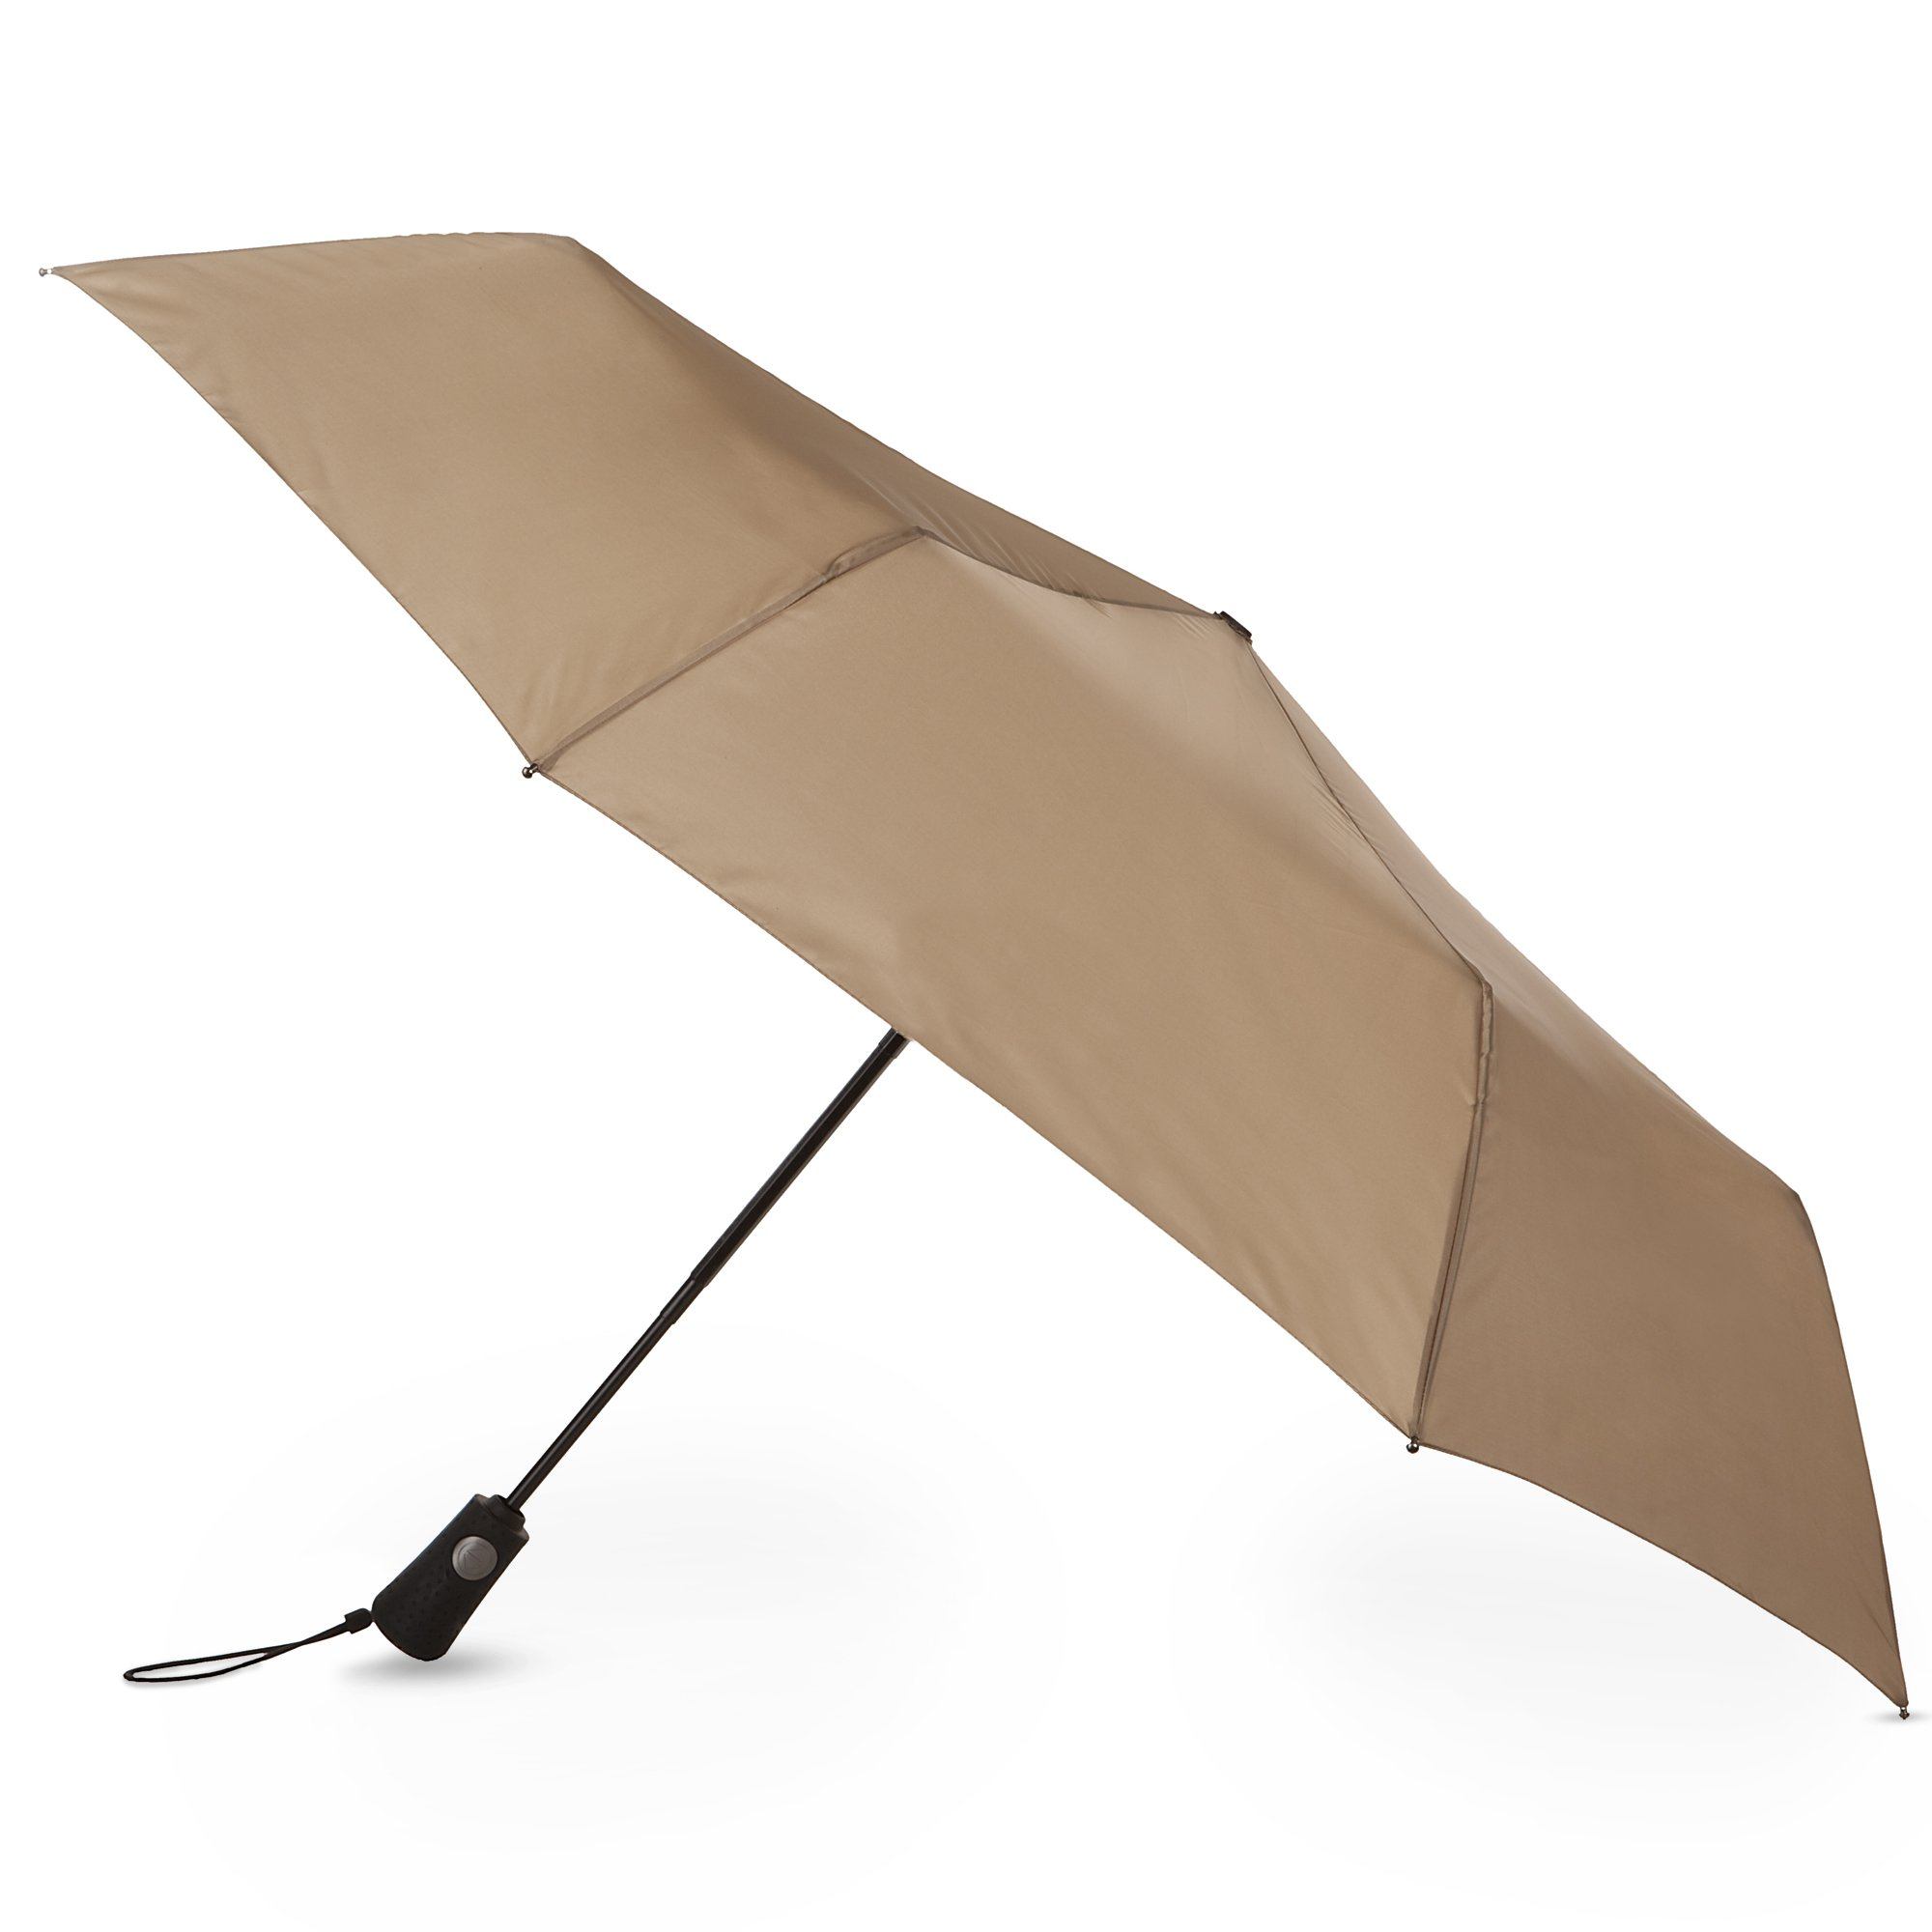 Totes Blue Line Basic  Auto Open Auto Close  Compact Umbrella, British Tan, One Size